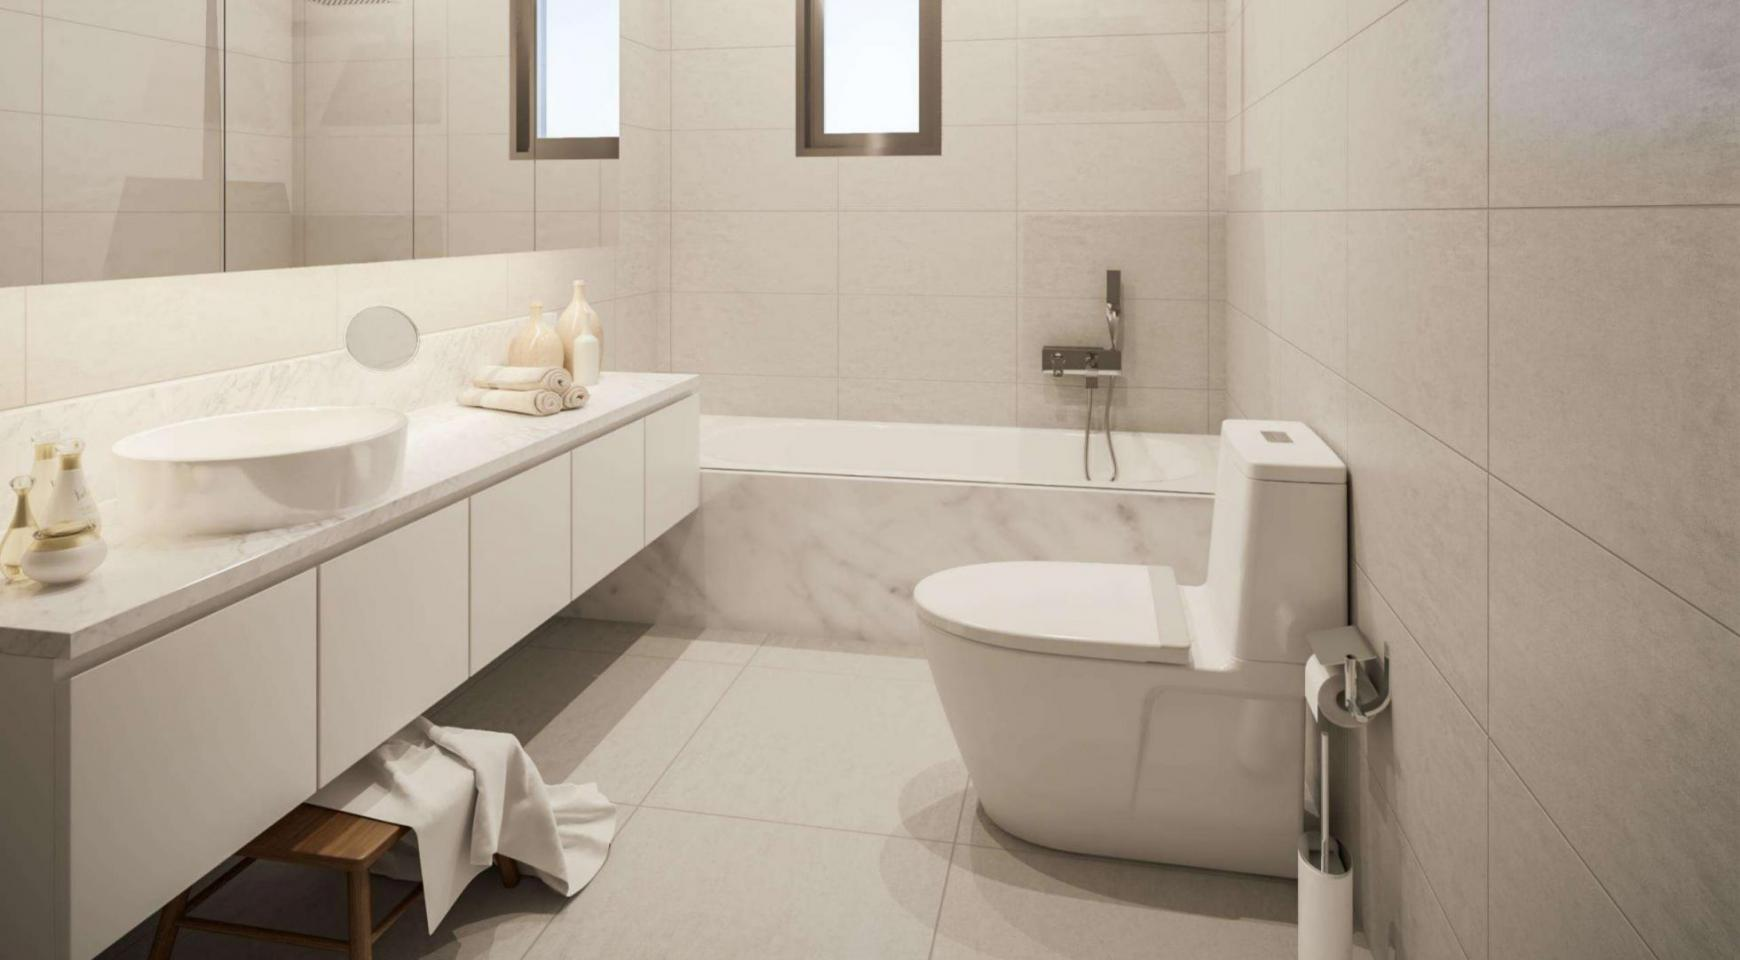 New Luxurious 2 Bedroom Townhouse in Agios Tychonas - 8